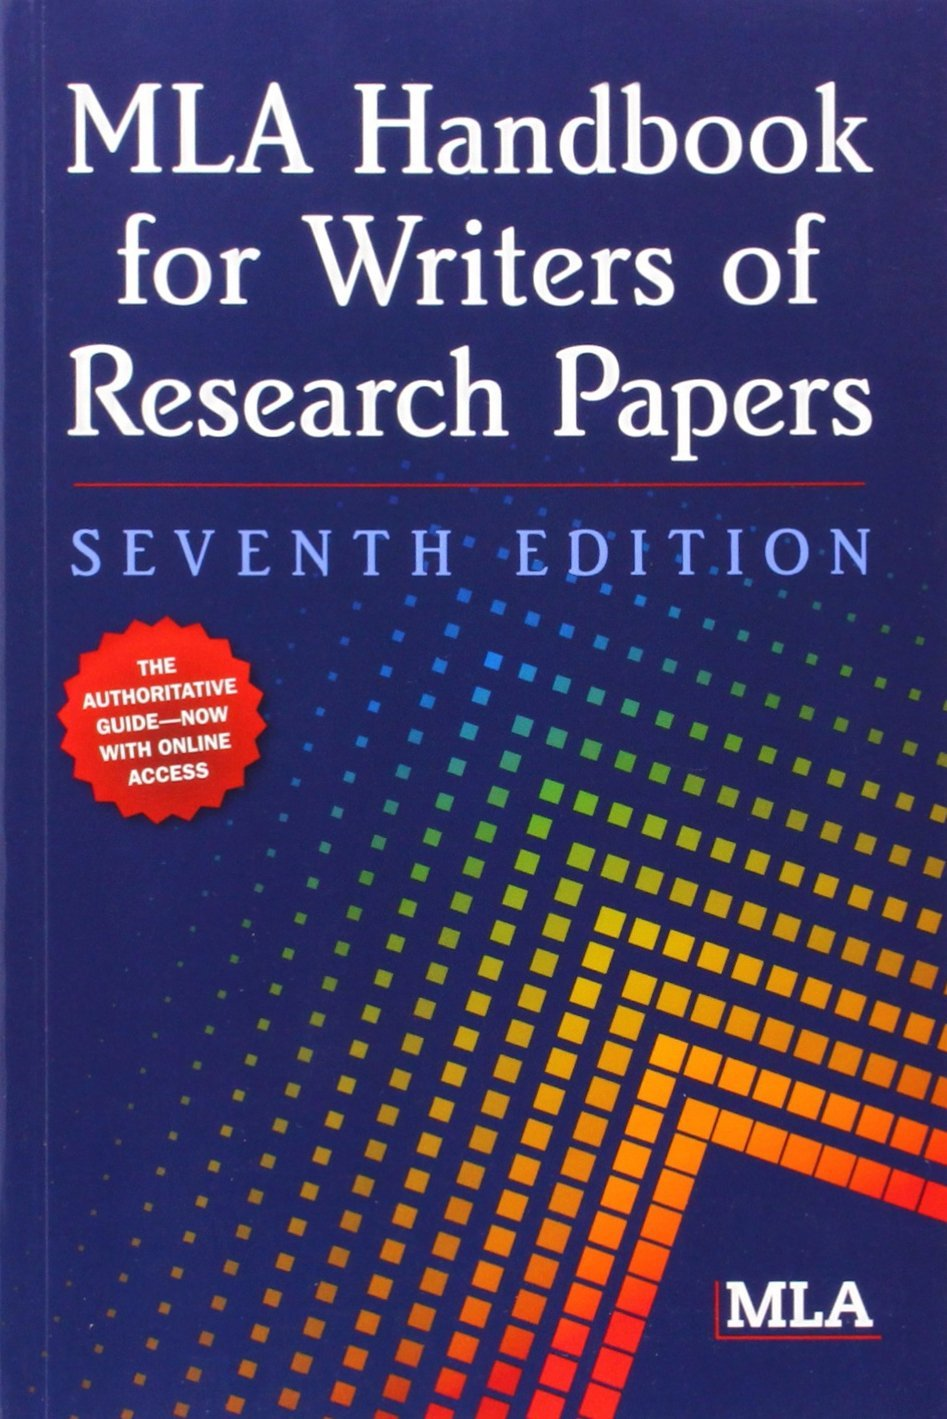 001 Mla Handbook For Writers Of Research Paper Impressive Papers 7th Edition 8th Pdf Free Download Joseph Gibaldi 6th Full